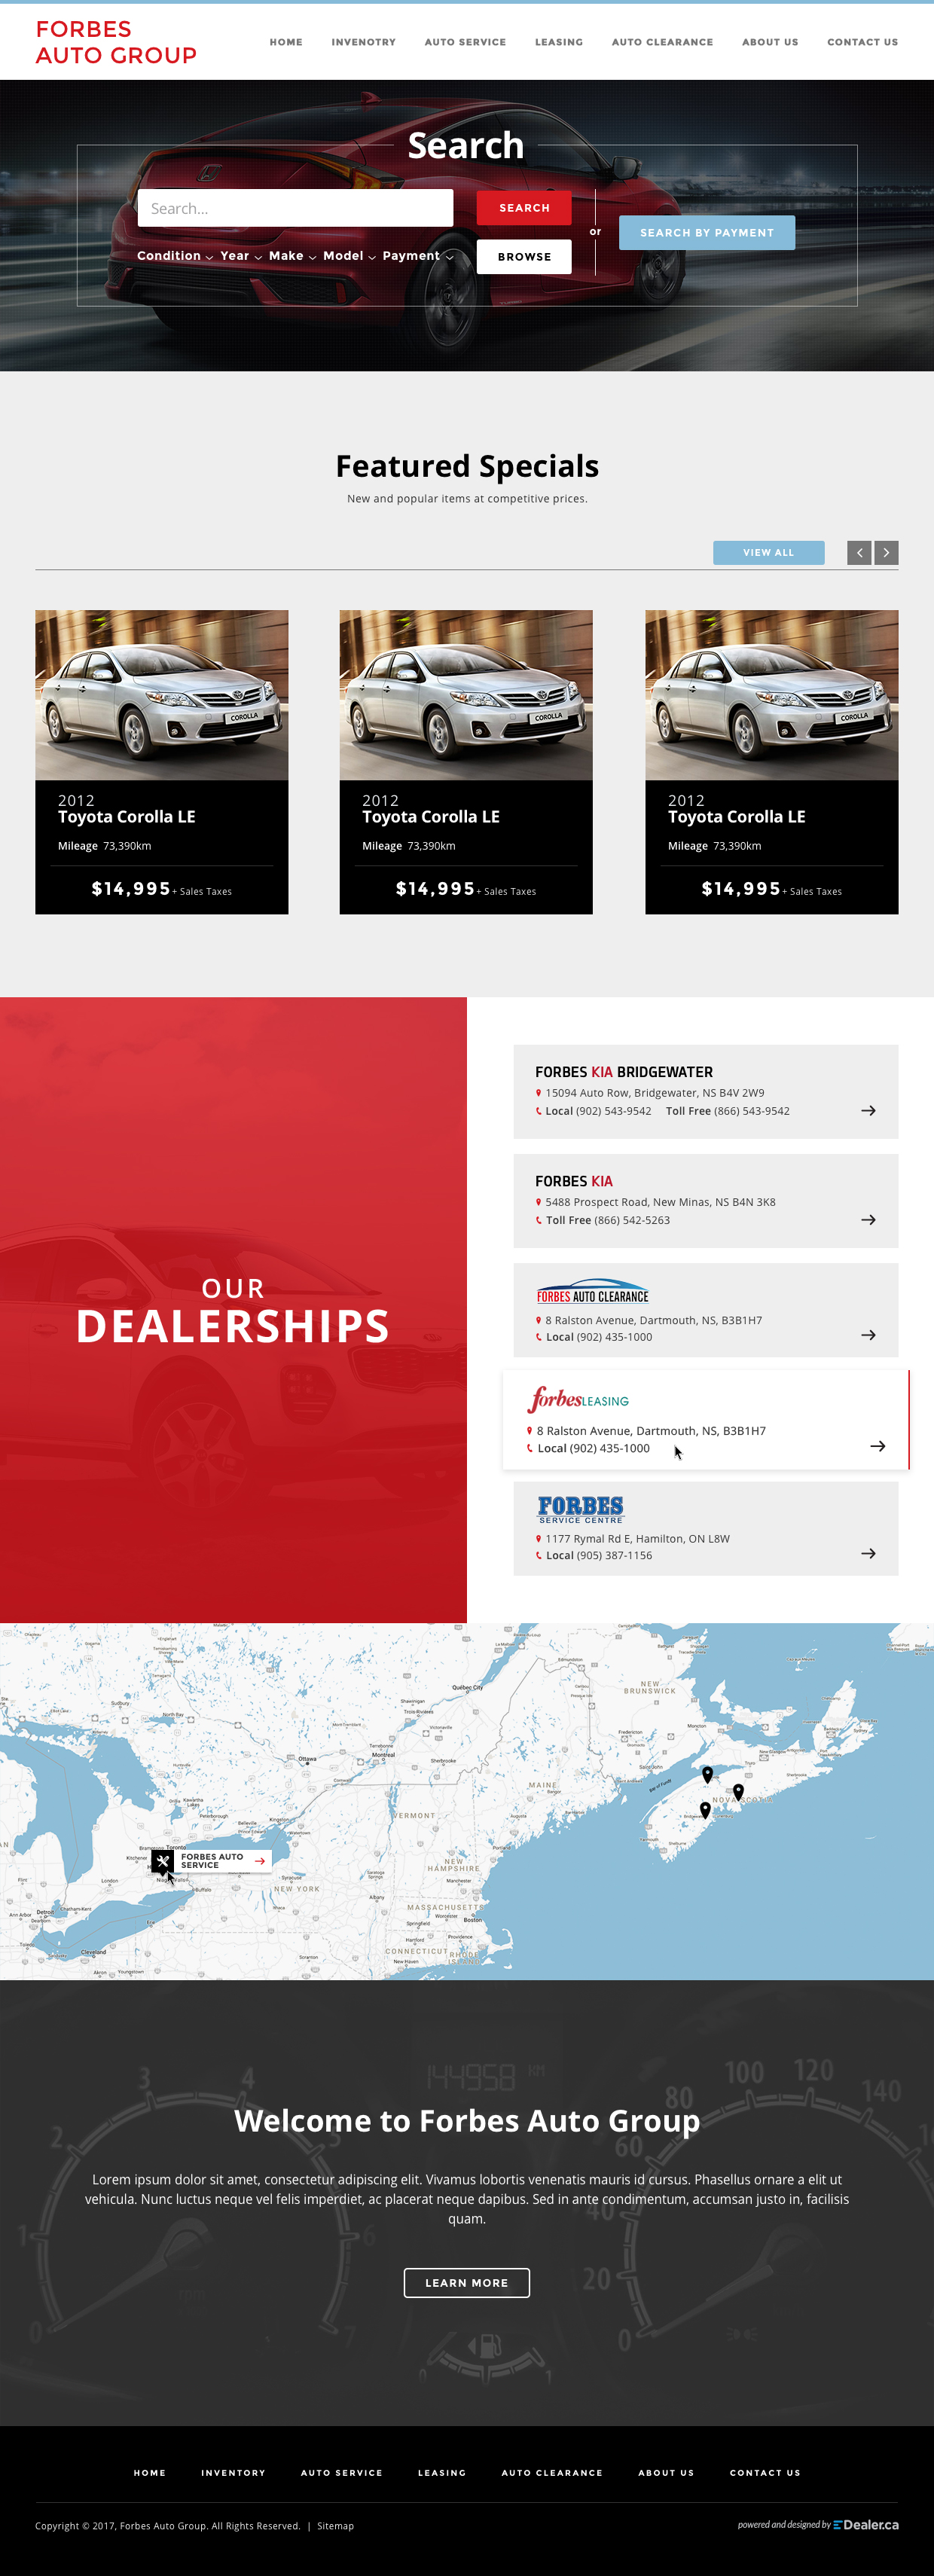 Forbes Auto Group